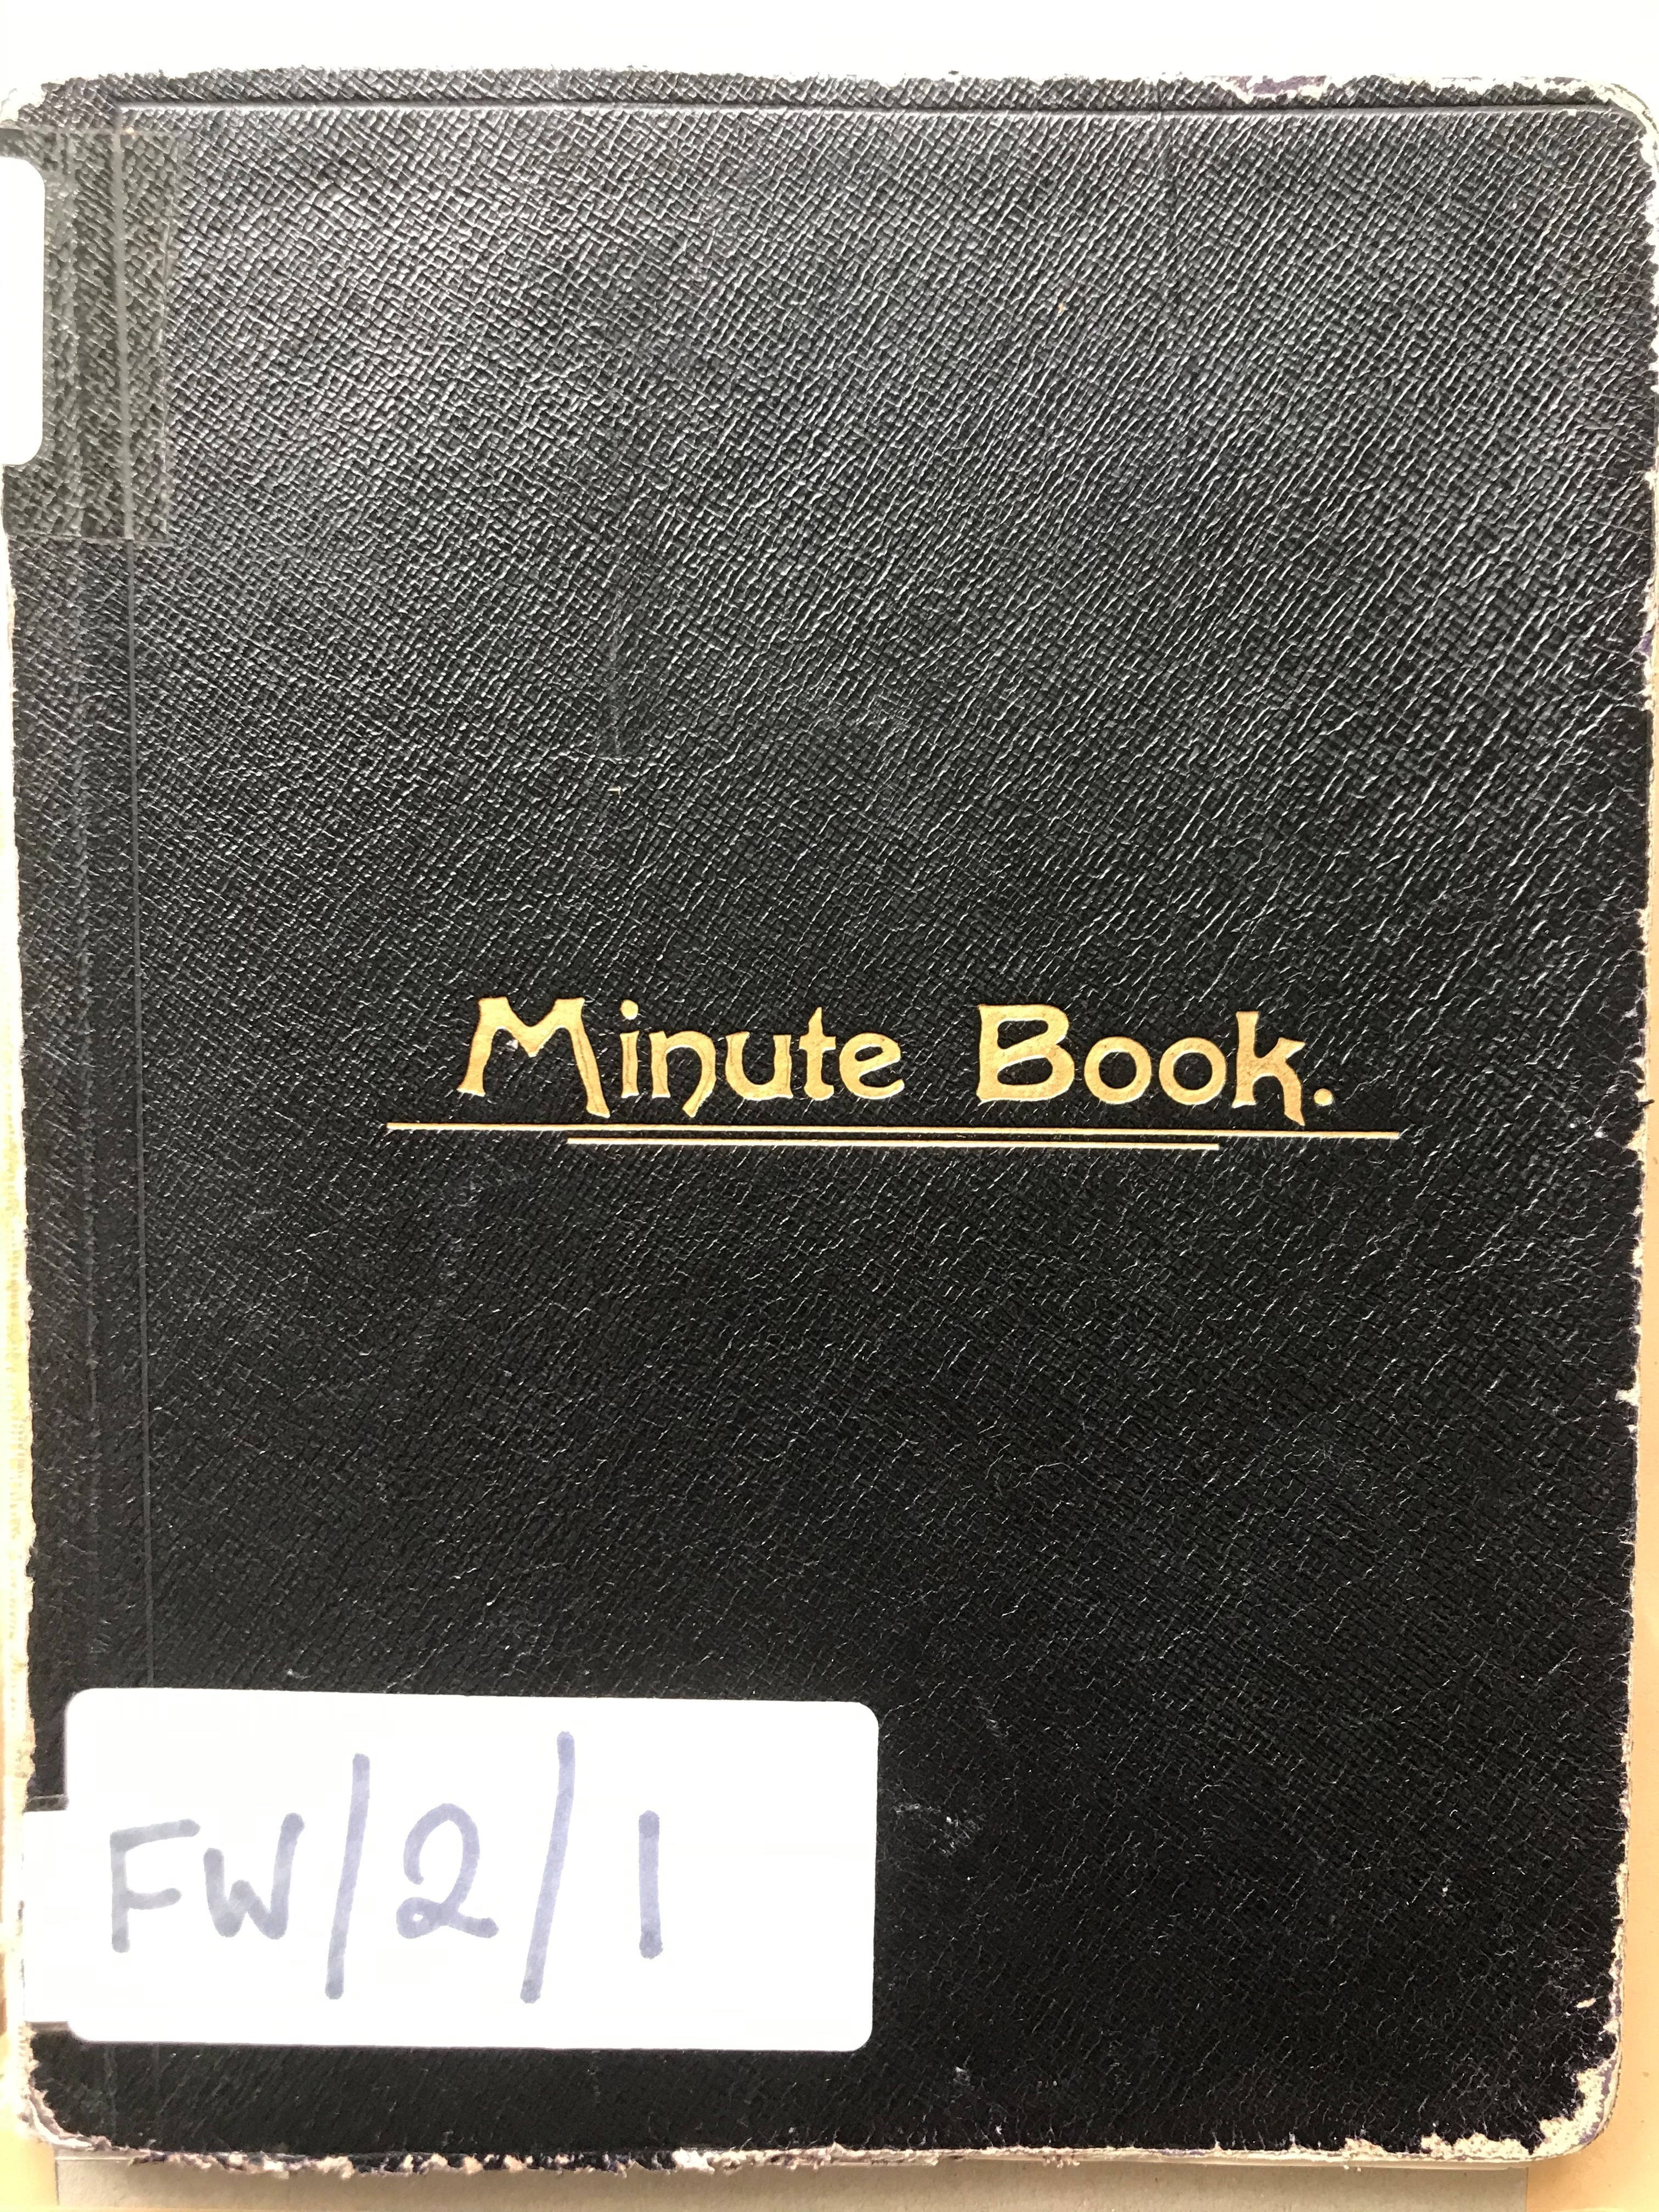 Minute Book FW 2 11